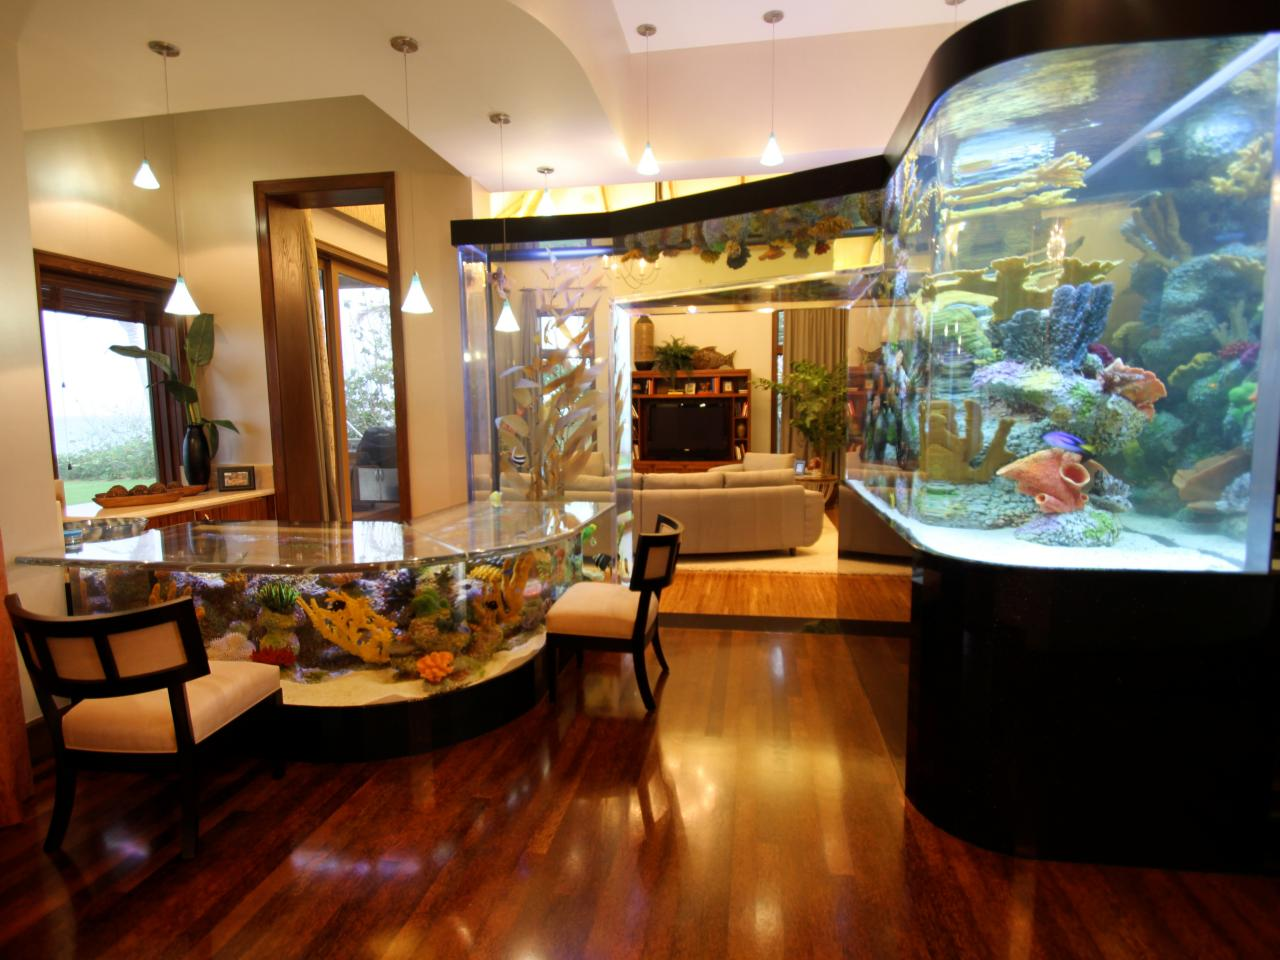 Fish tank in kitchen - 2 Million Dollar Fish Tank In Kitchen